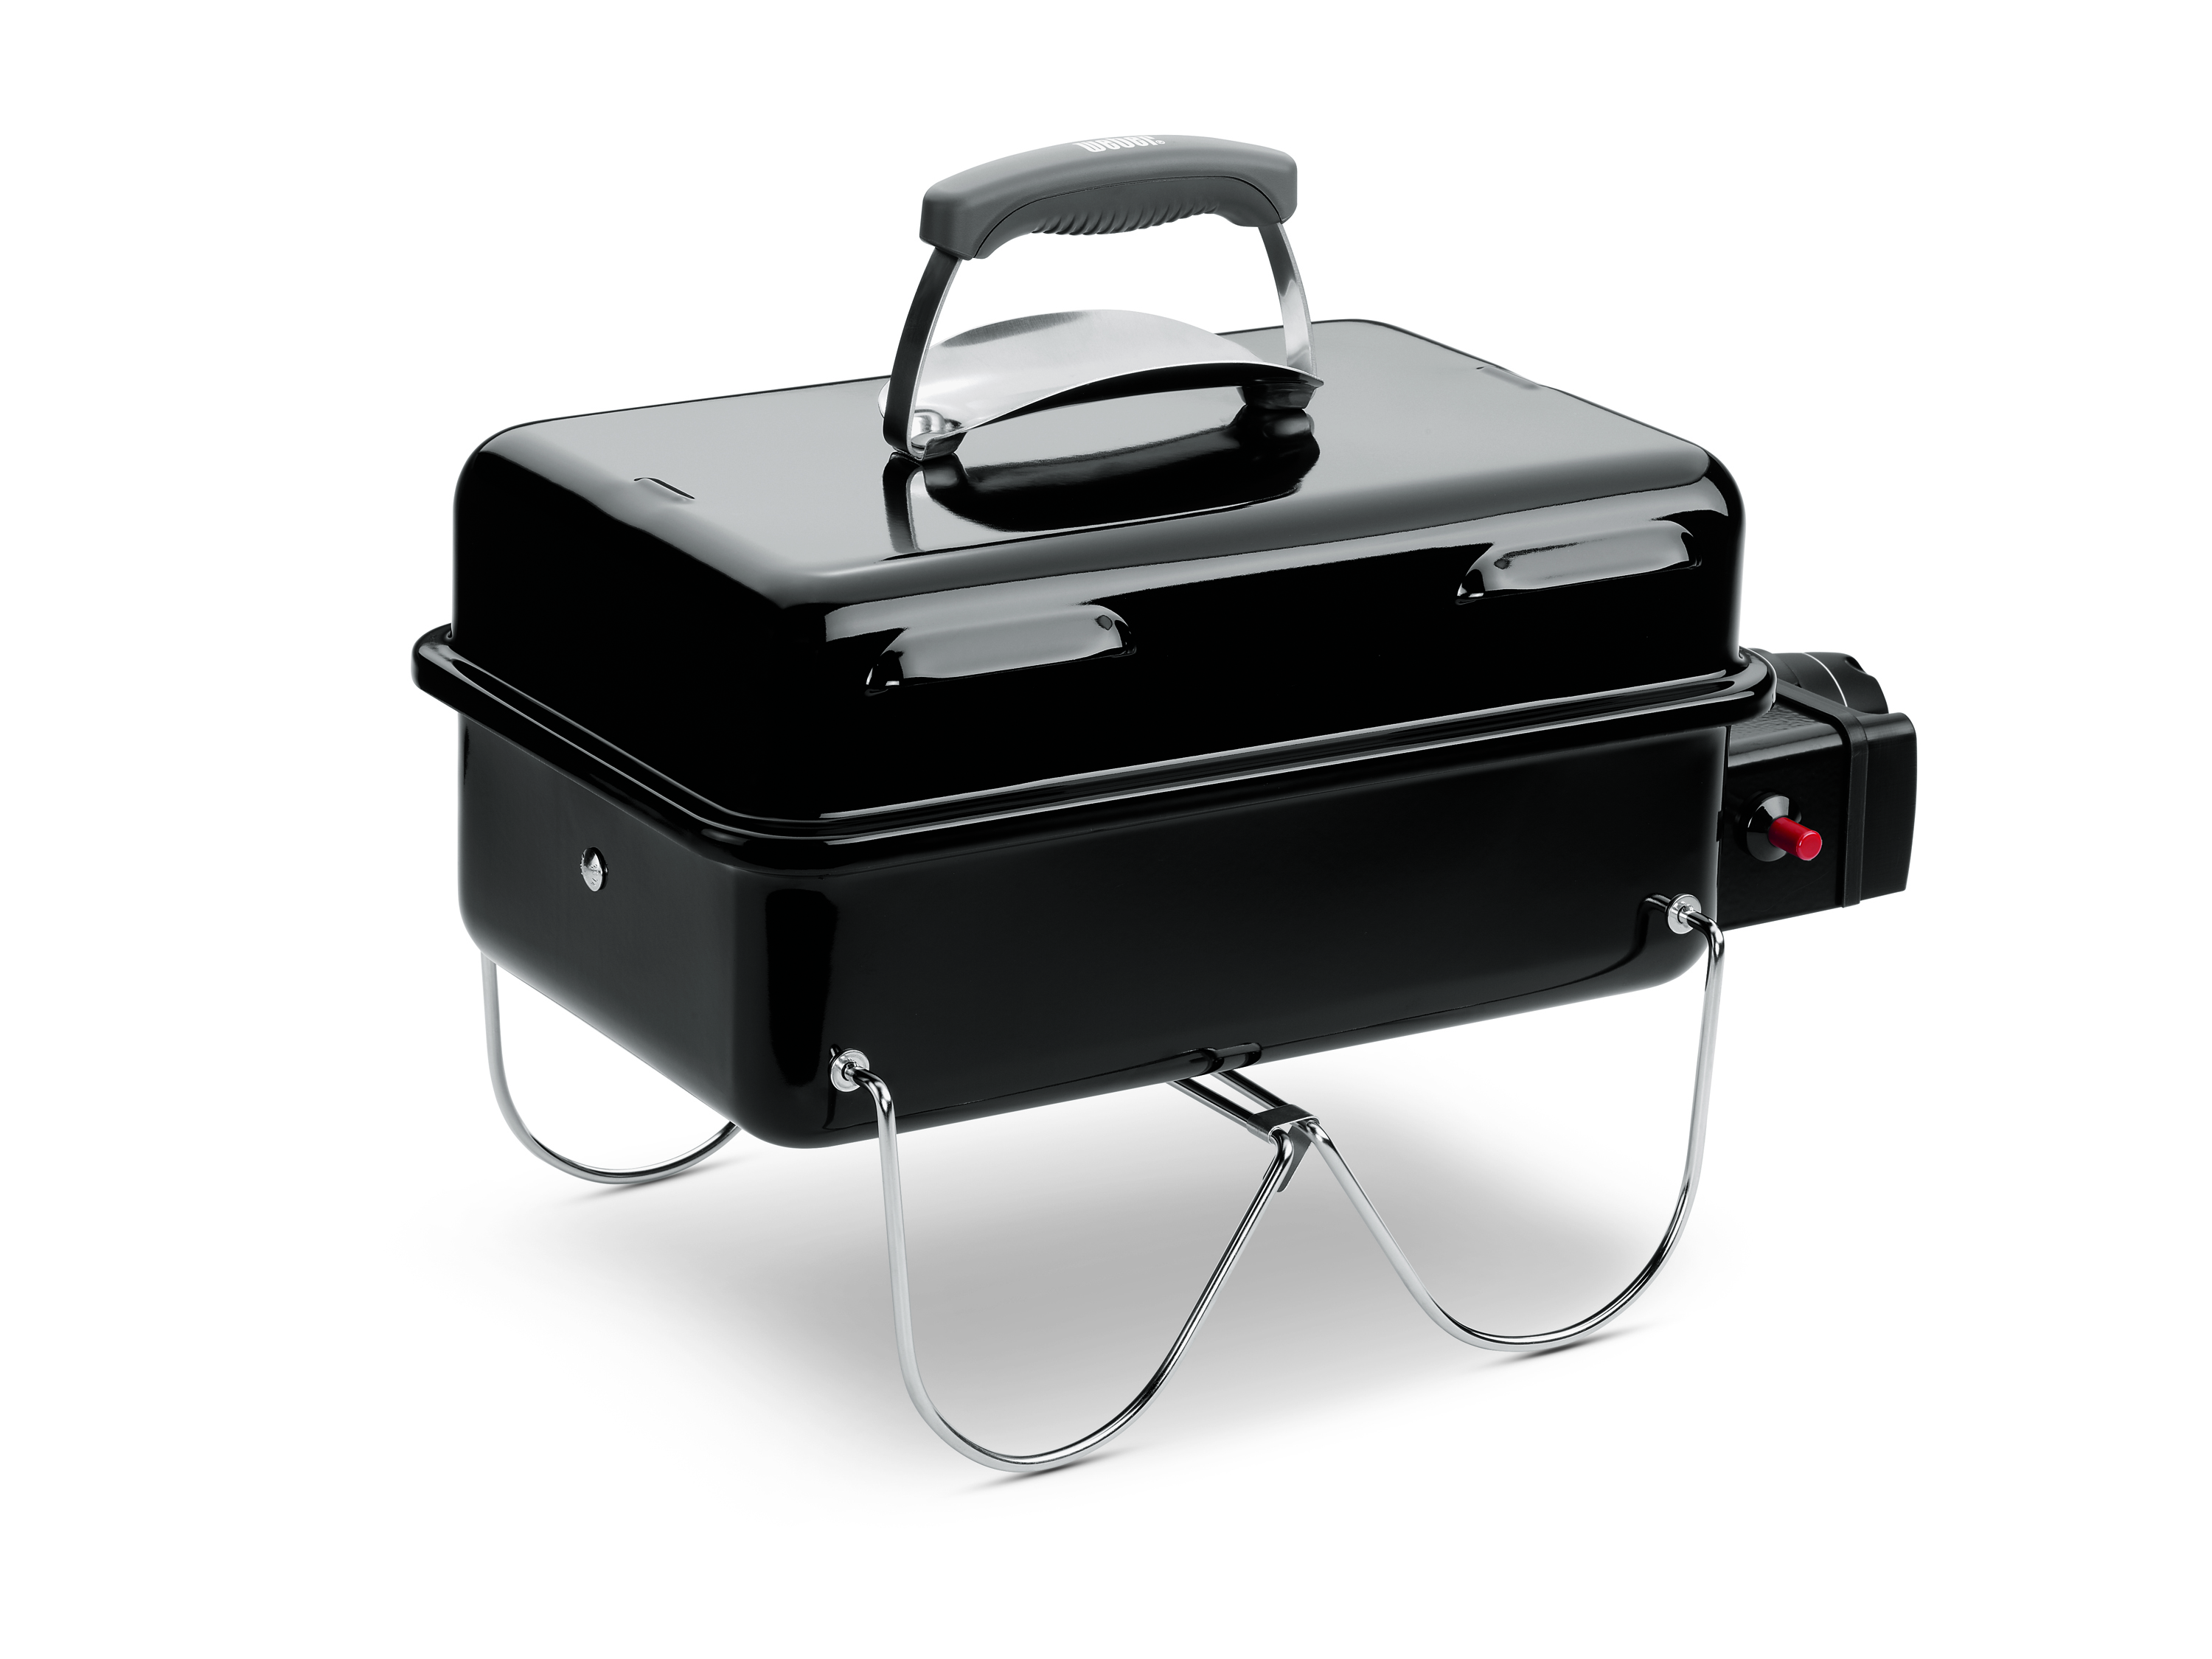 Weber Holzkohlegrill Welche Größe : Weber go anywhere gas black go anywhere gasgrill grills